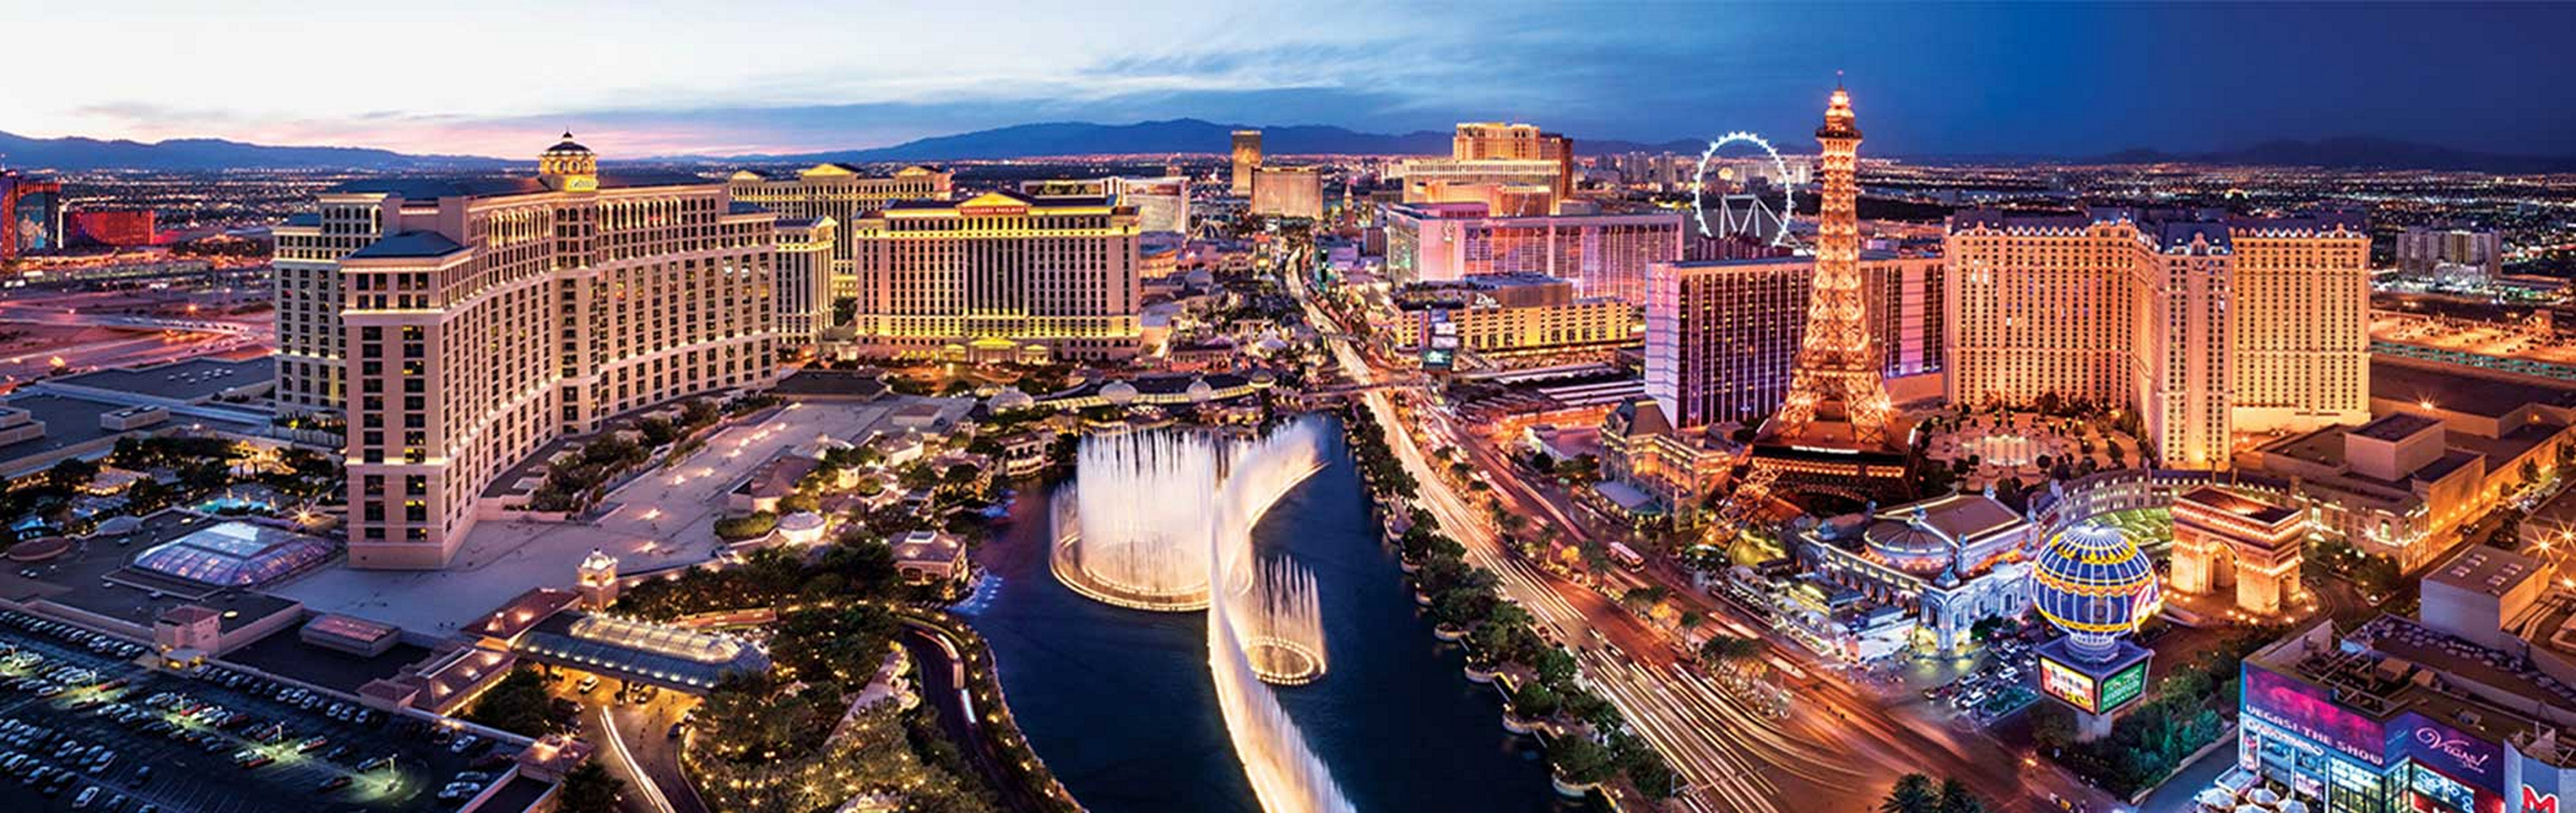 Banner image of the Las Vegas strip